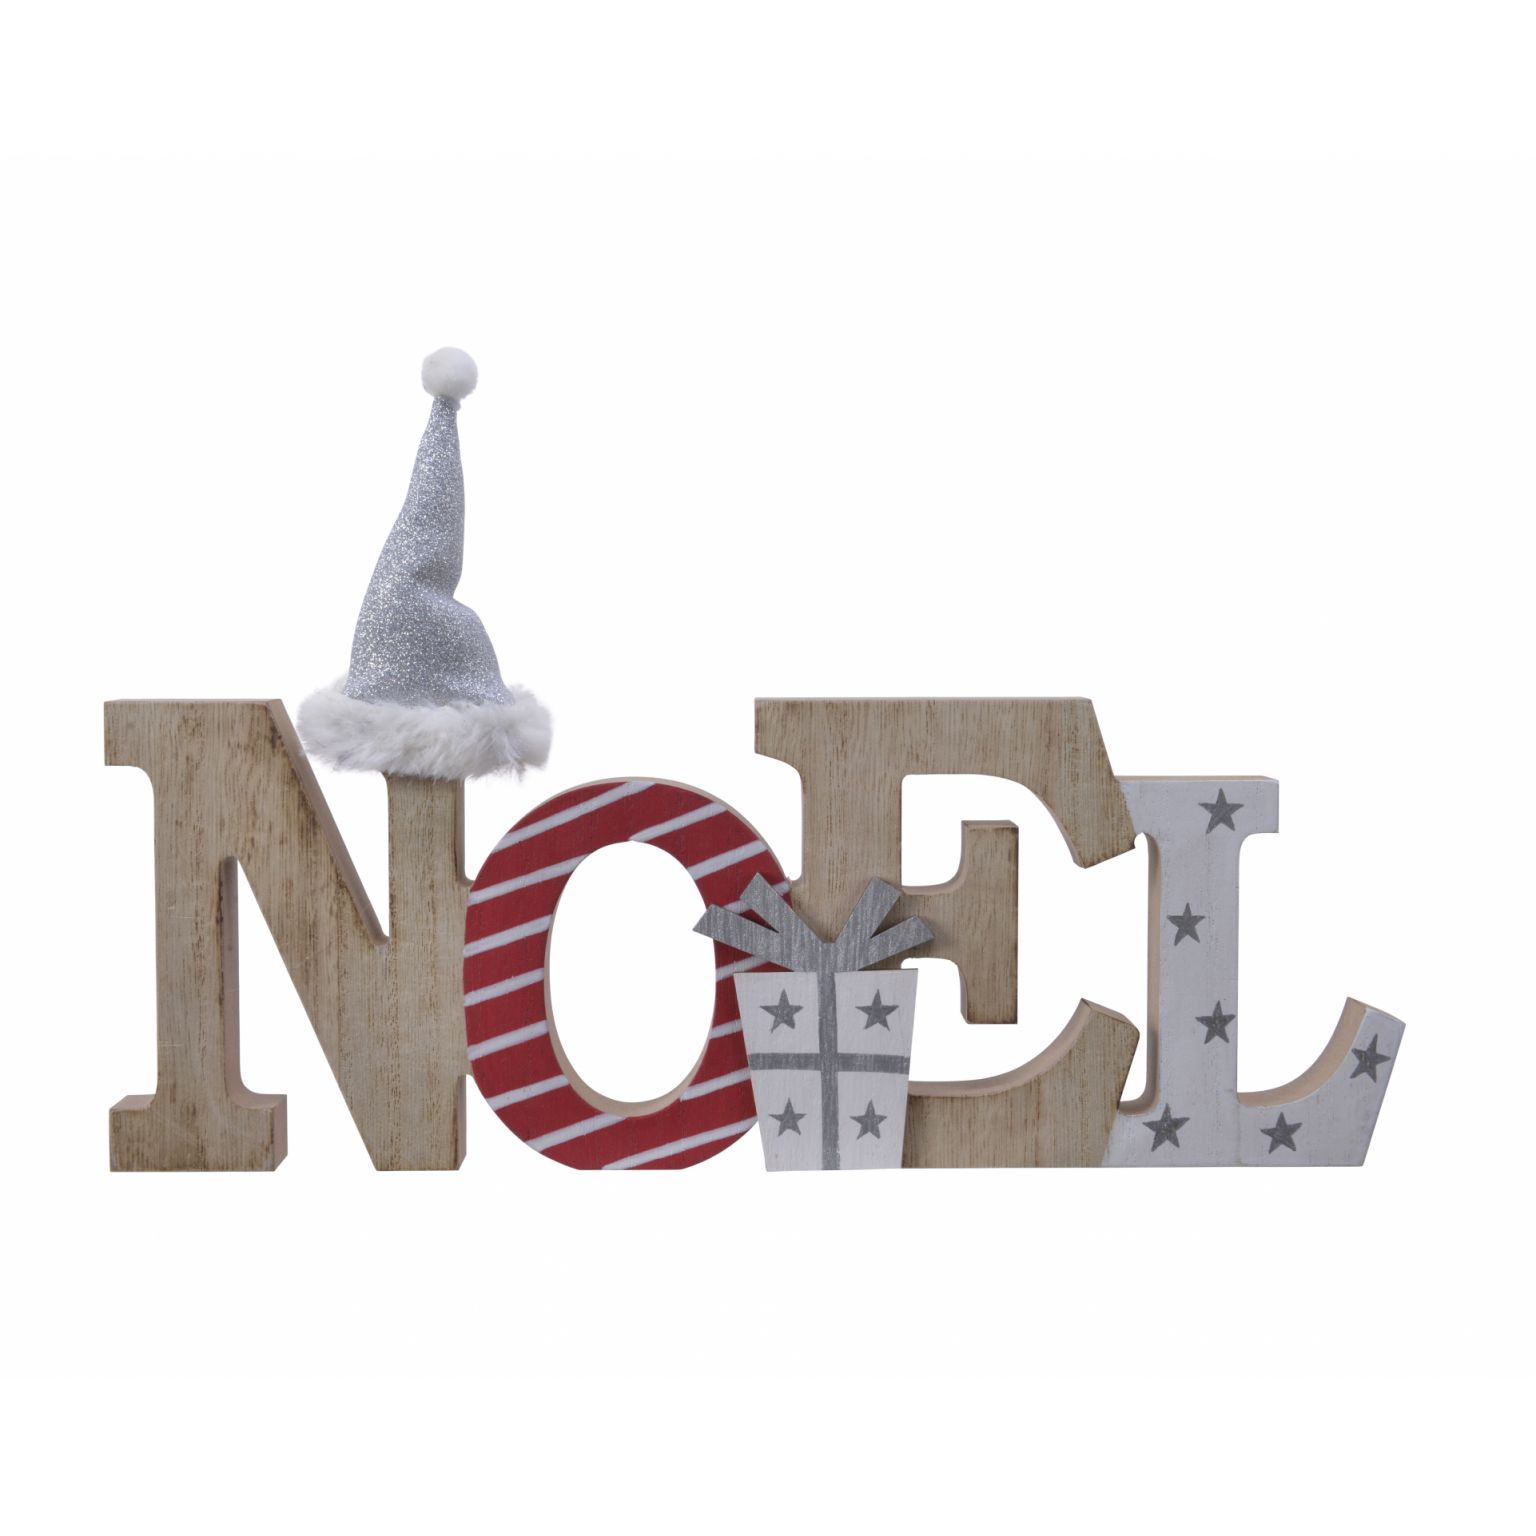 Pf Noel PF Mdf Noel Deco W Hat W Glitter Red/White 12X34X2Cm   Jones